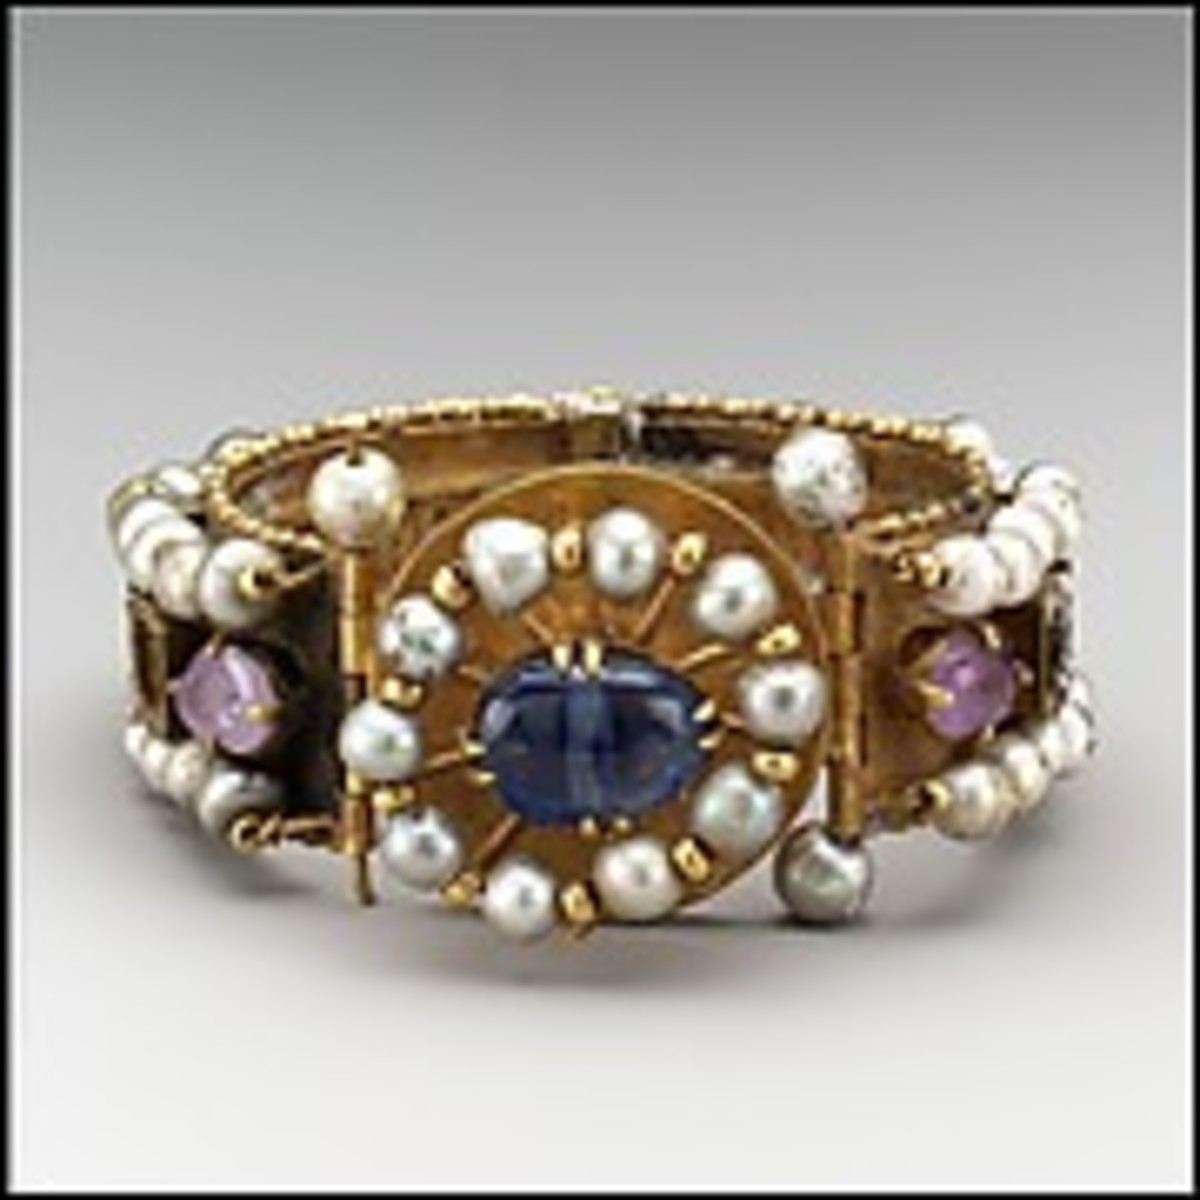 Date:	between 500 and 700 Medium:	Gold, silver, pearls, amethyst, sapphire, glass, quartz Location:	The Met Fifth Avenue in Gallery 302